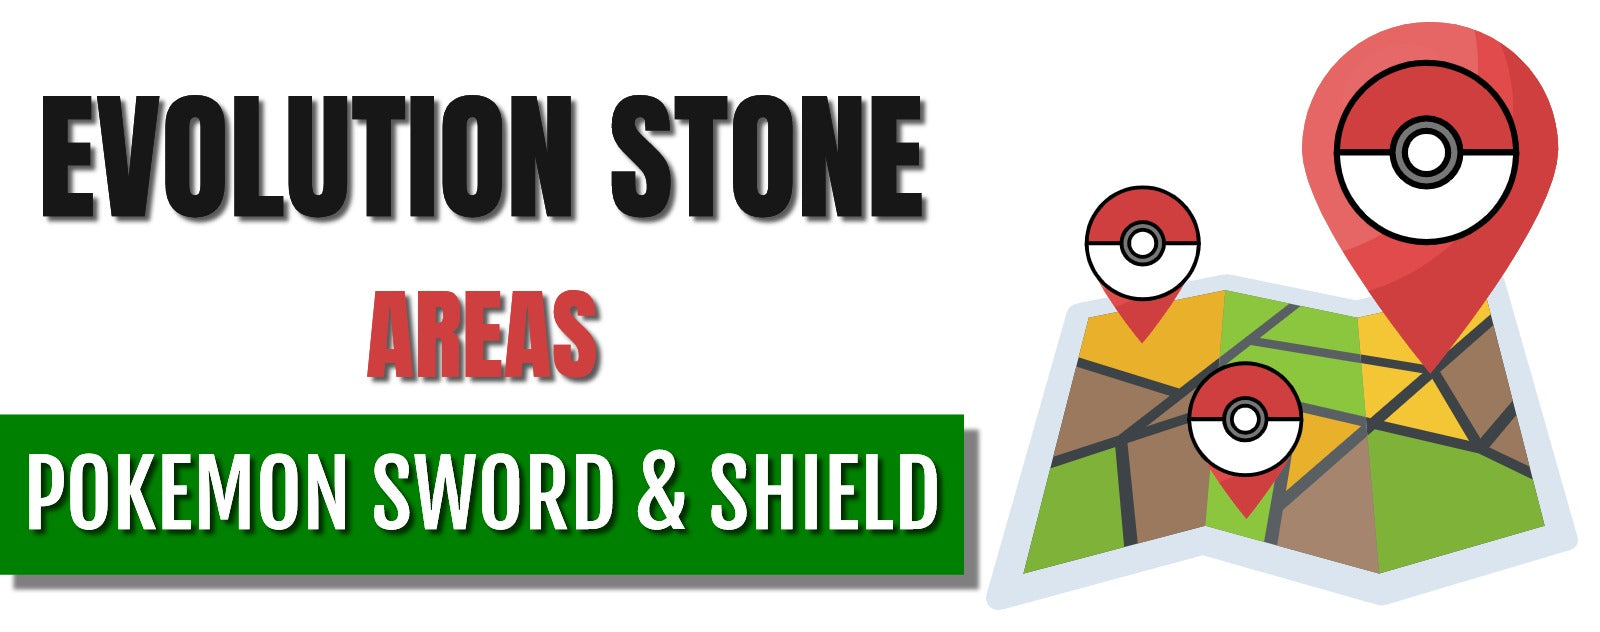 Ensured Evolution Stone areas in Pokémon Sword and Shield